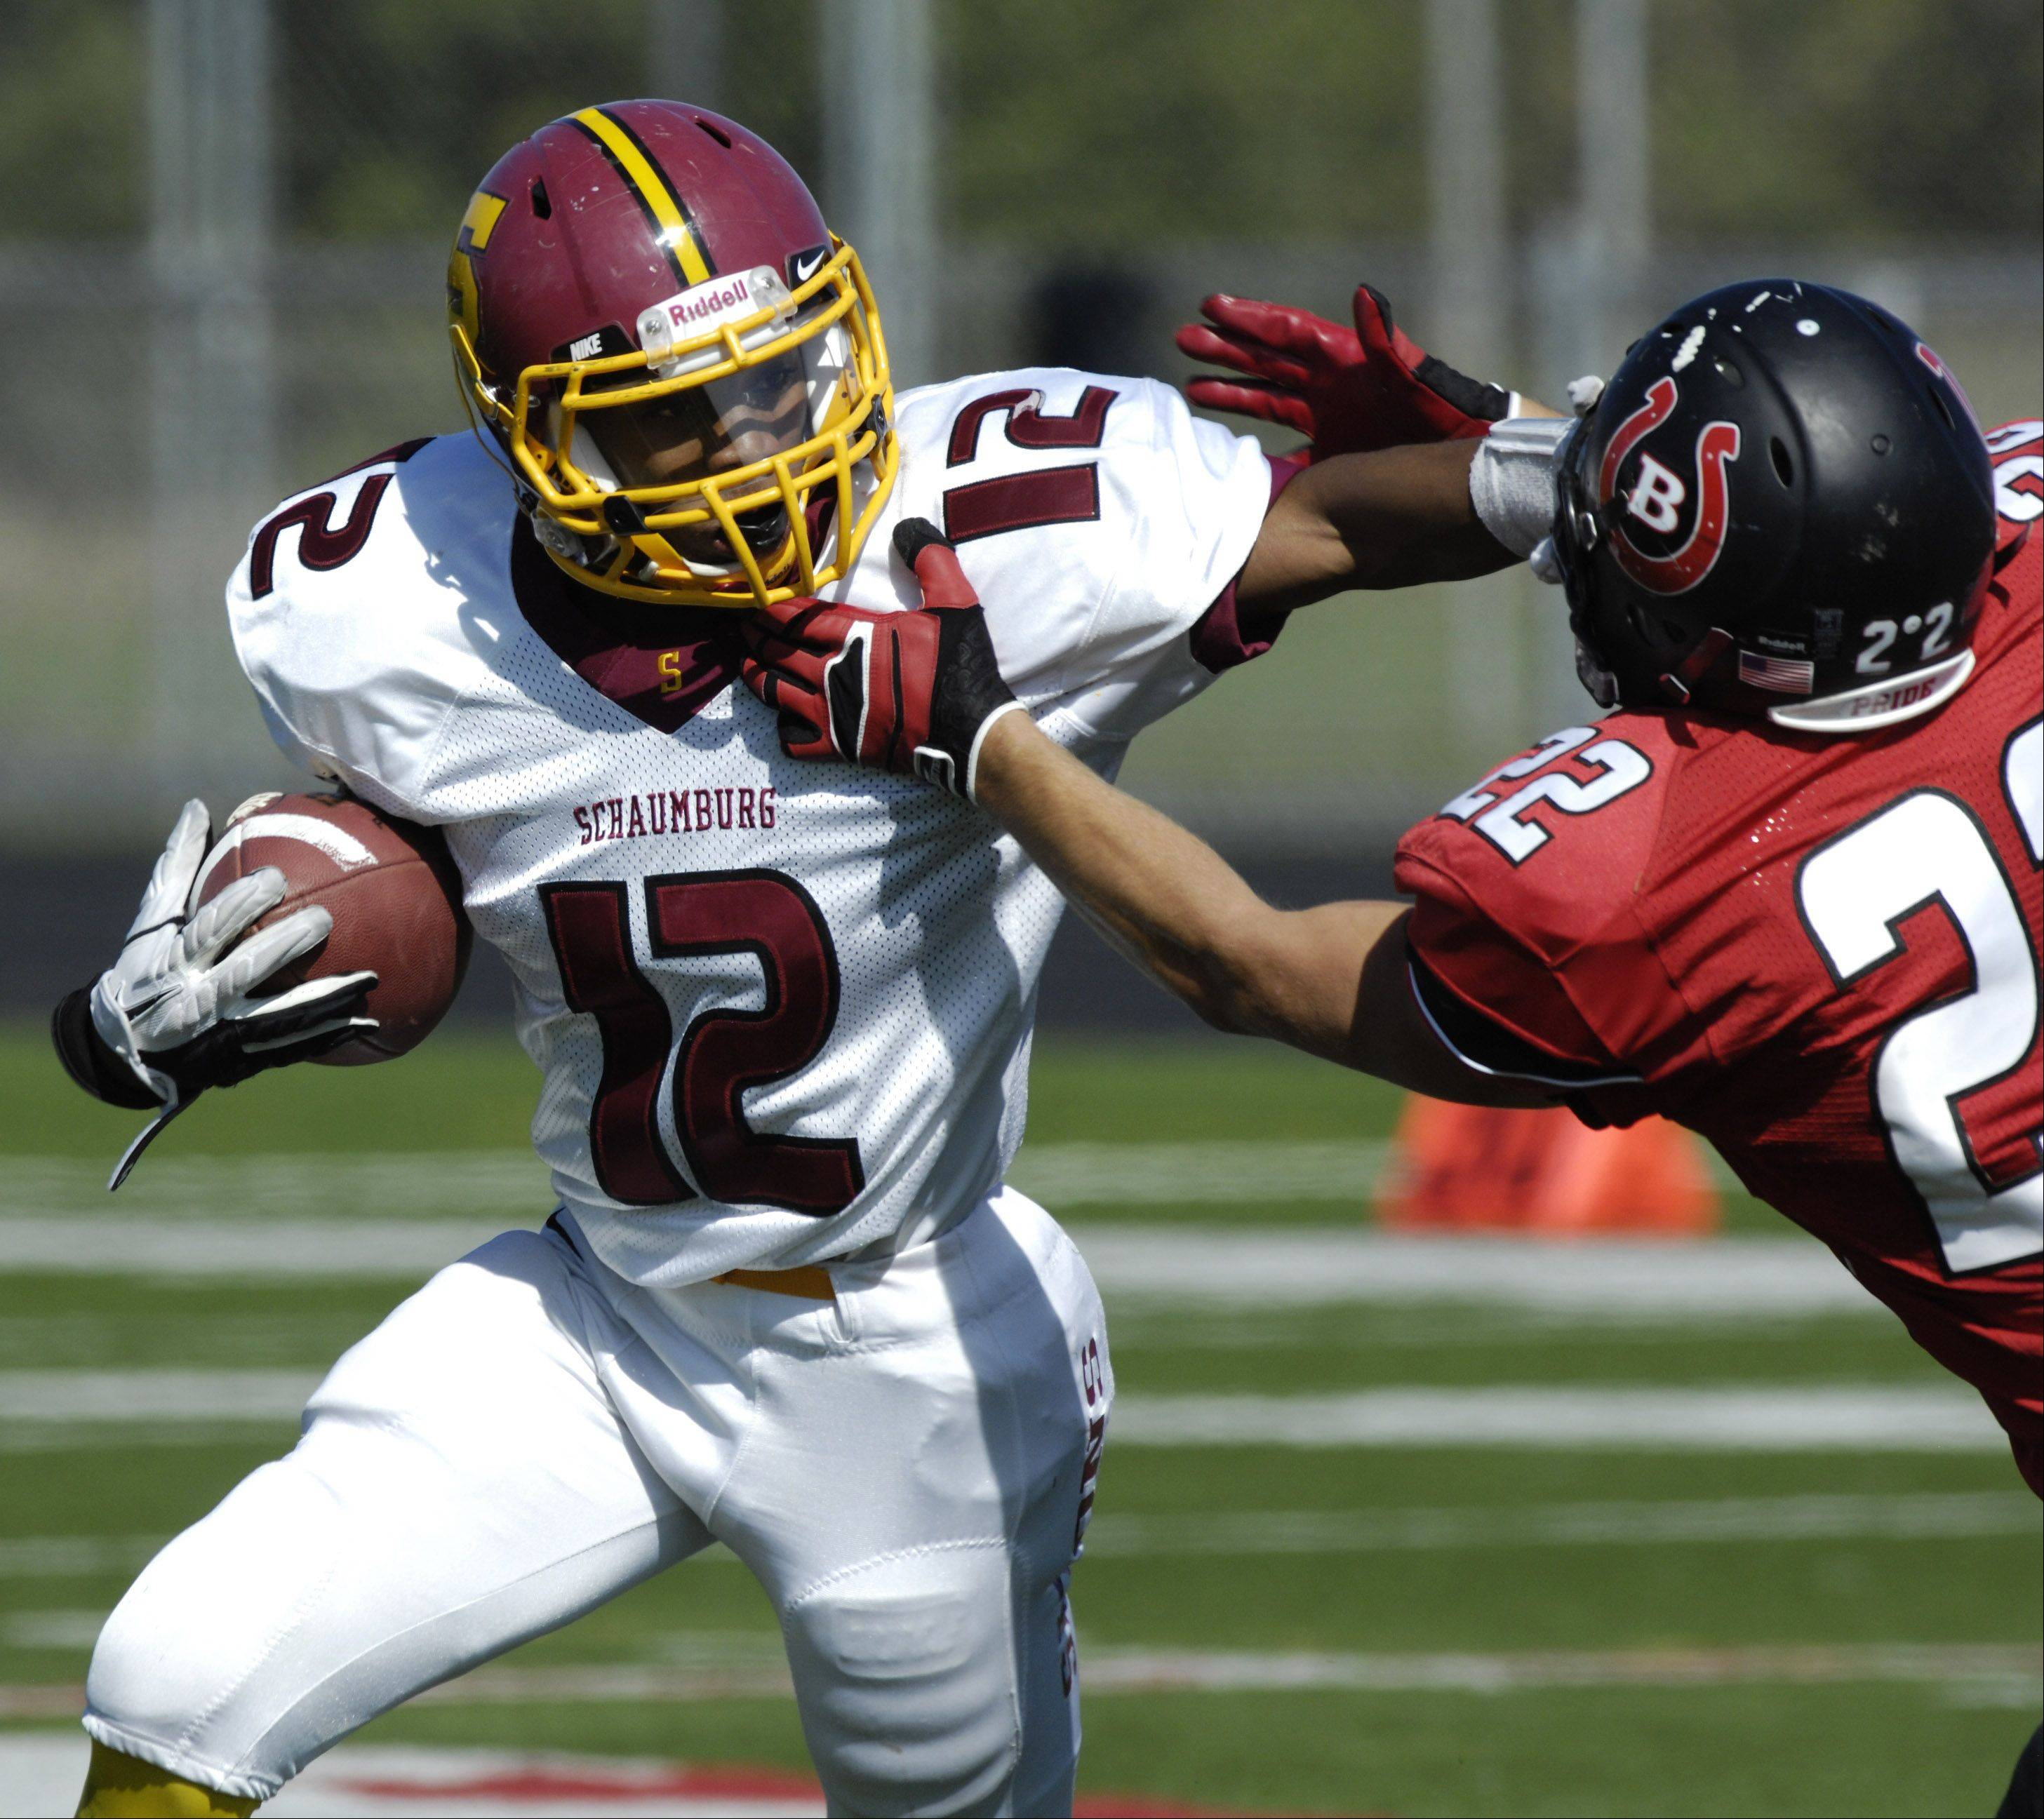 Schaumburg�s Stacey Smith, left, breaks free from Barrington�s Nick Coy during Saturday�s game.